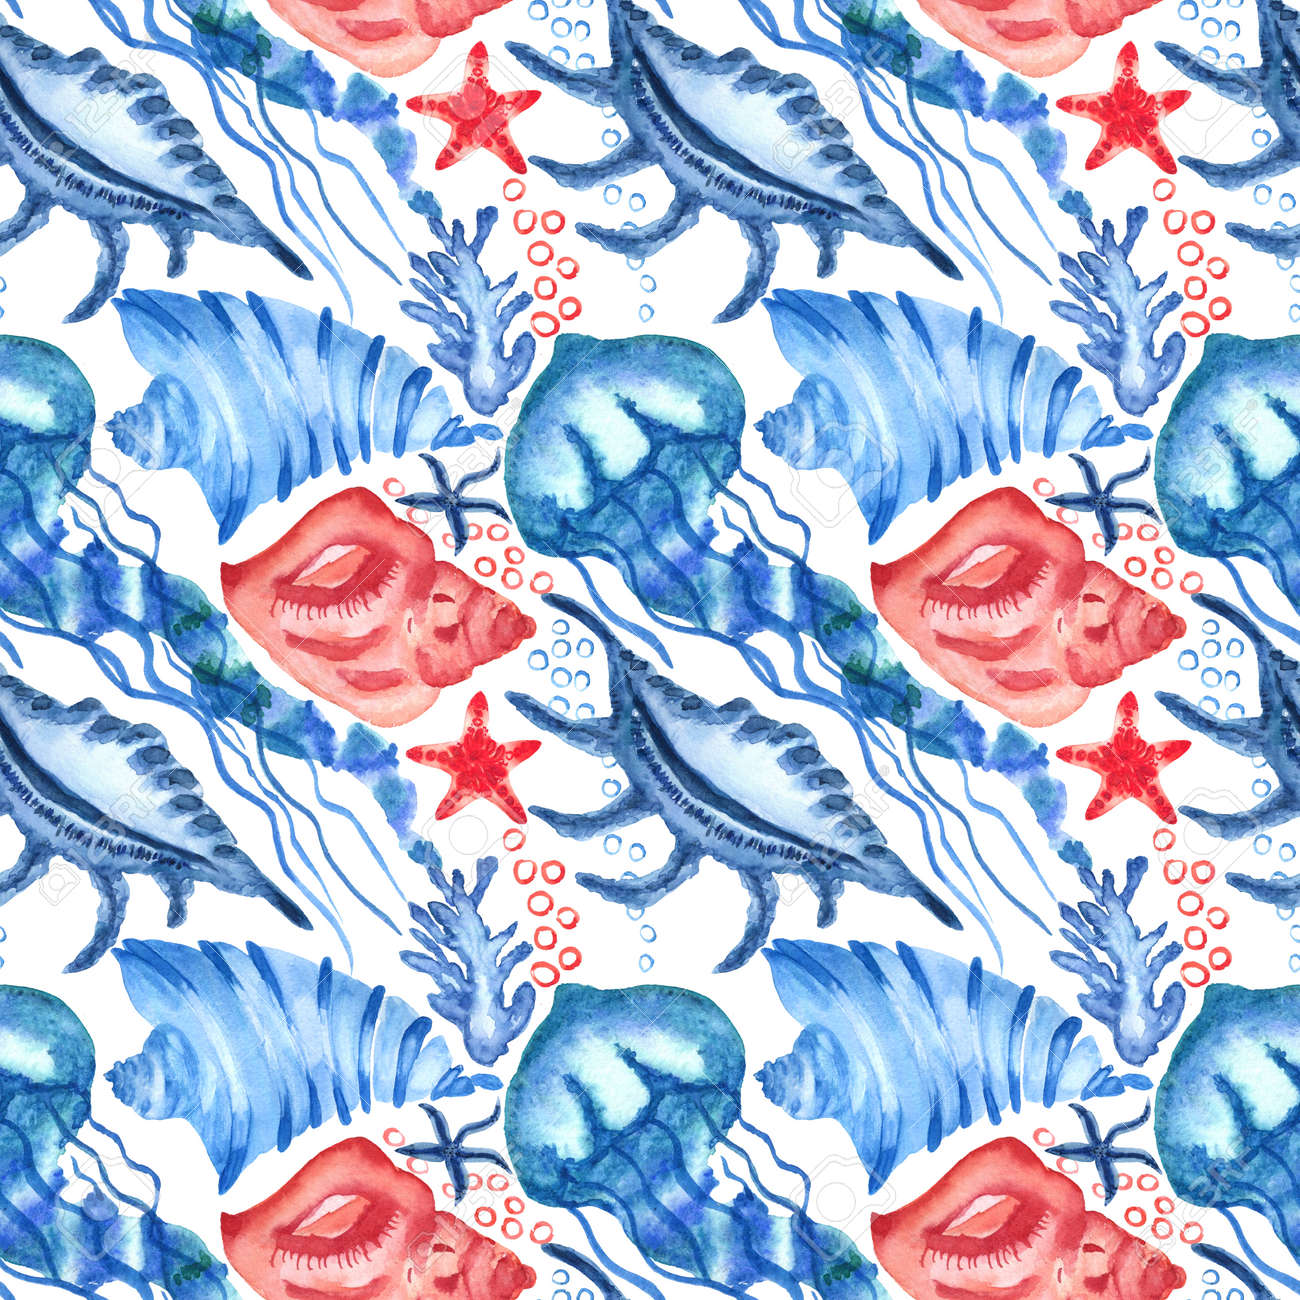 Watercolor seashells and starfish seamless pattern. Illustration of jellyfishes and sea stars for for creating fabrics, textile, decoupage, wallpapers, print, gift wrapping paper, invitations. - 167408761